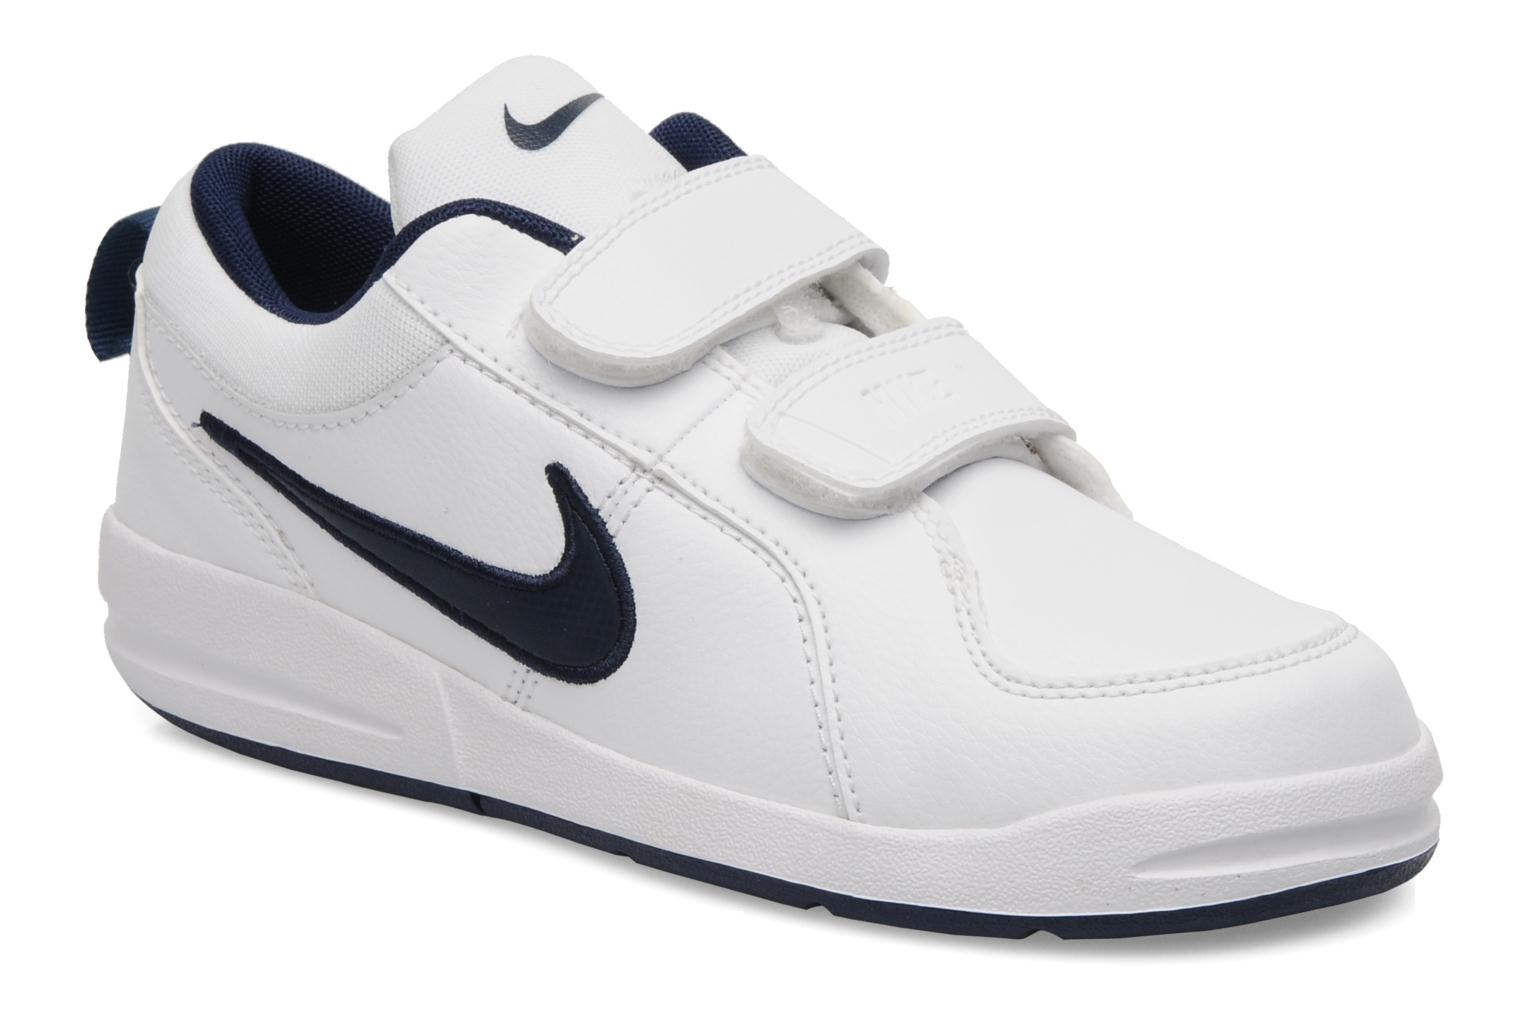 sneakers for cheap db24b 2d08e Chaussures de sport Nike PICO 4 PSV Blanc vue détail paire